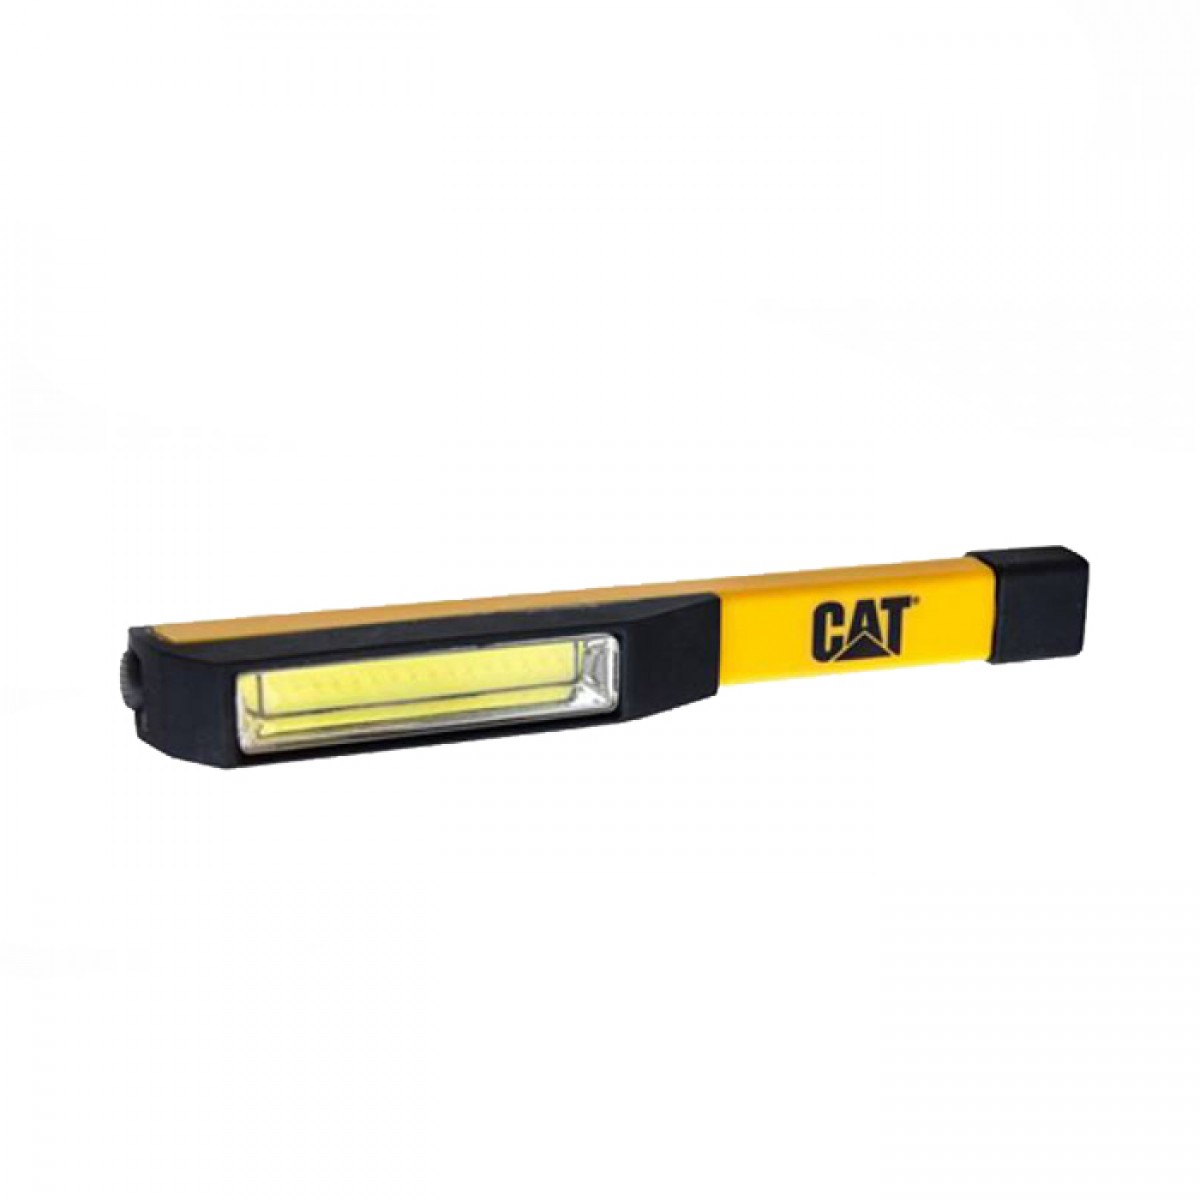 Φακός τσέπης COB LED 175 Lumens CT1000 CATERPILLAR